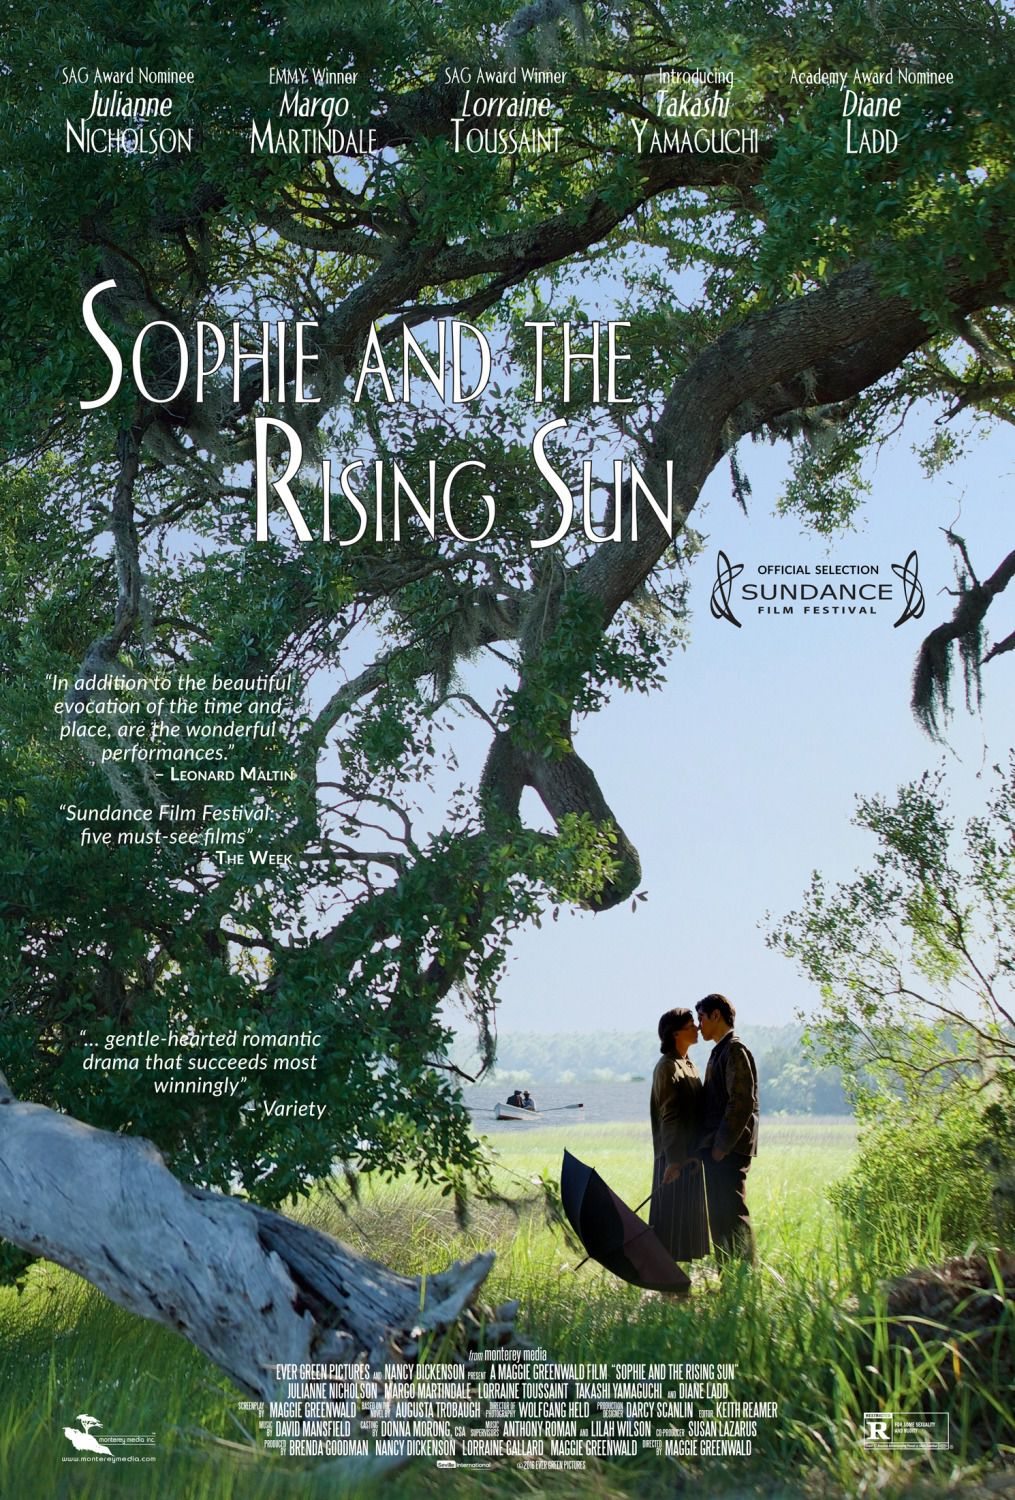 Sophie and the Rising Sun - in addiction to the beautiful evocation of the time and place, are the wonderful performances